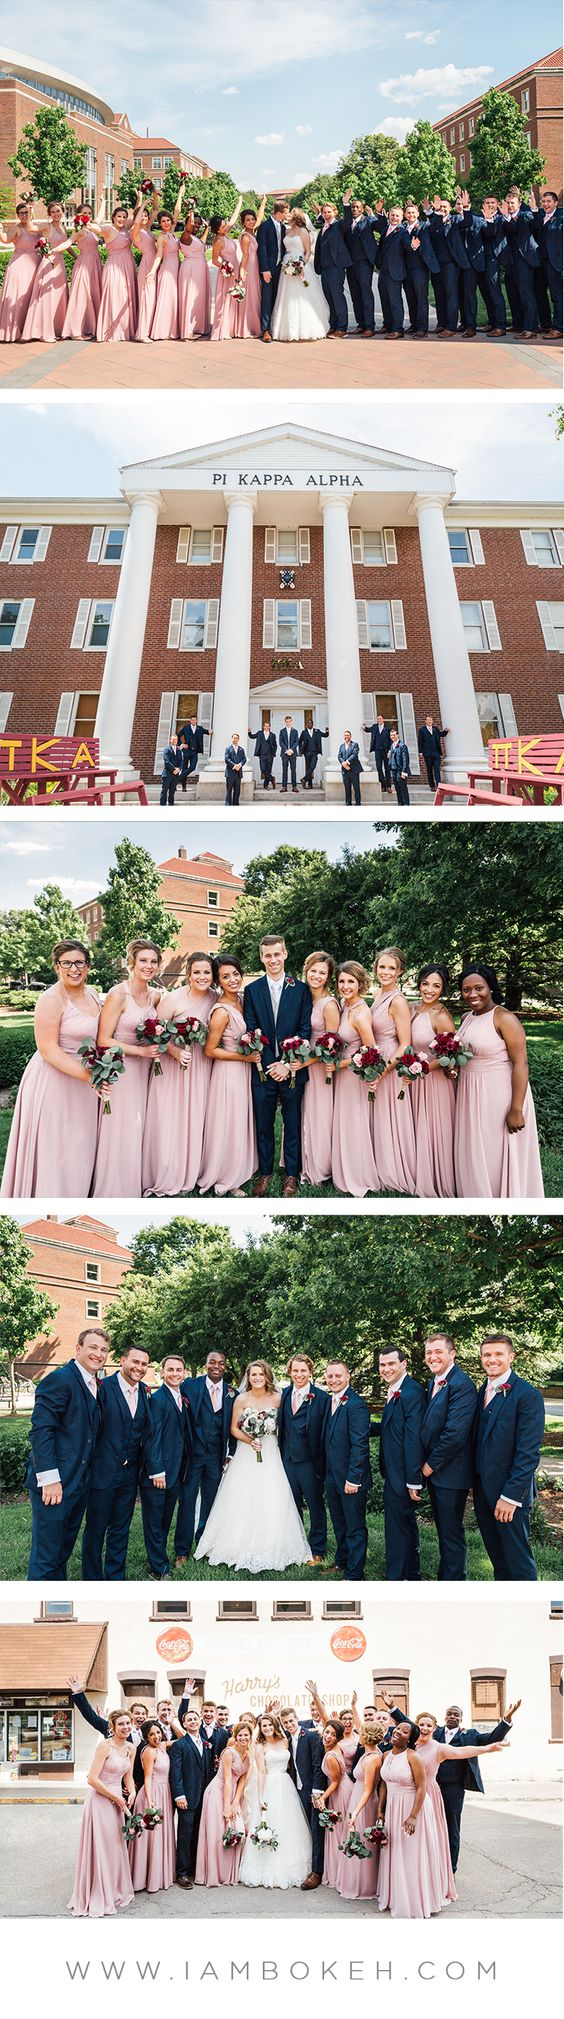 Bokéh Studios | Indiana Wedding in West Lafayette, Indiana at Purdue University: Josh & Haley